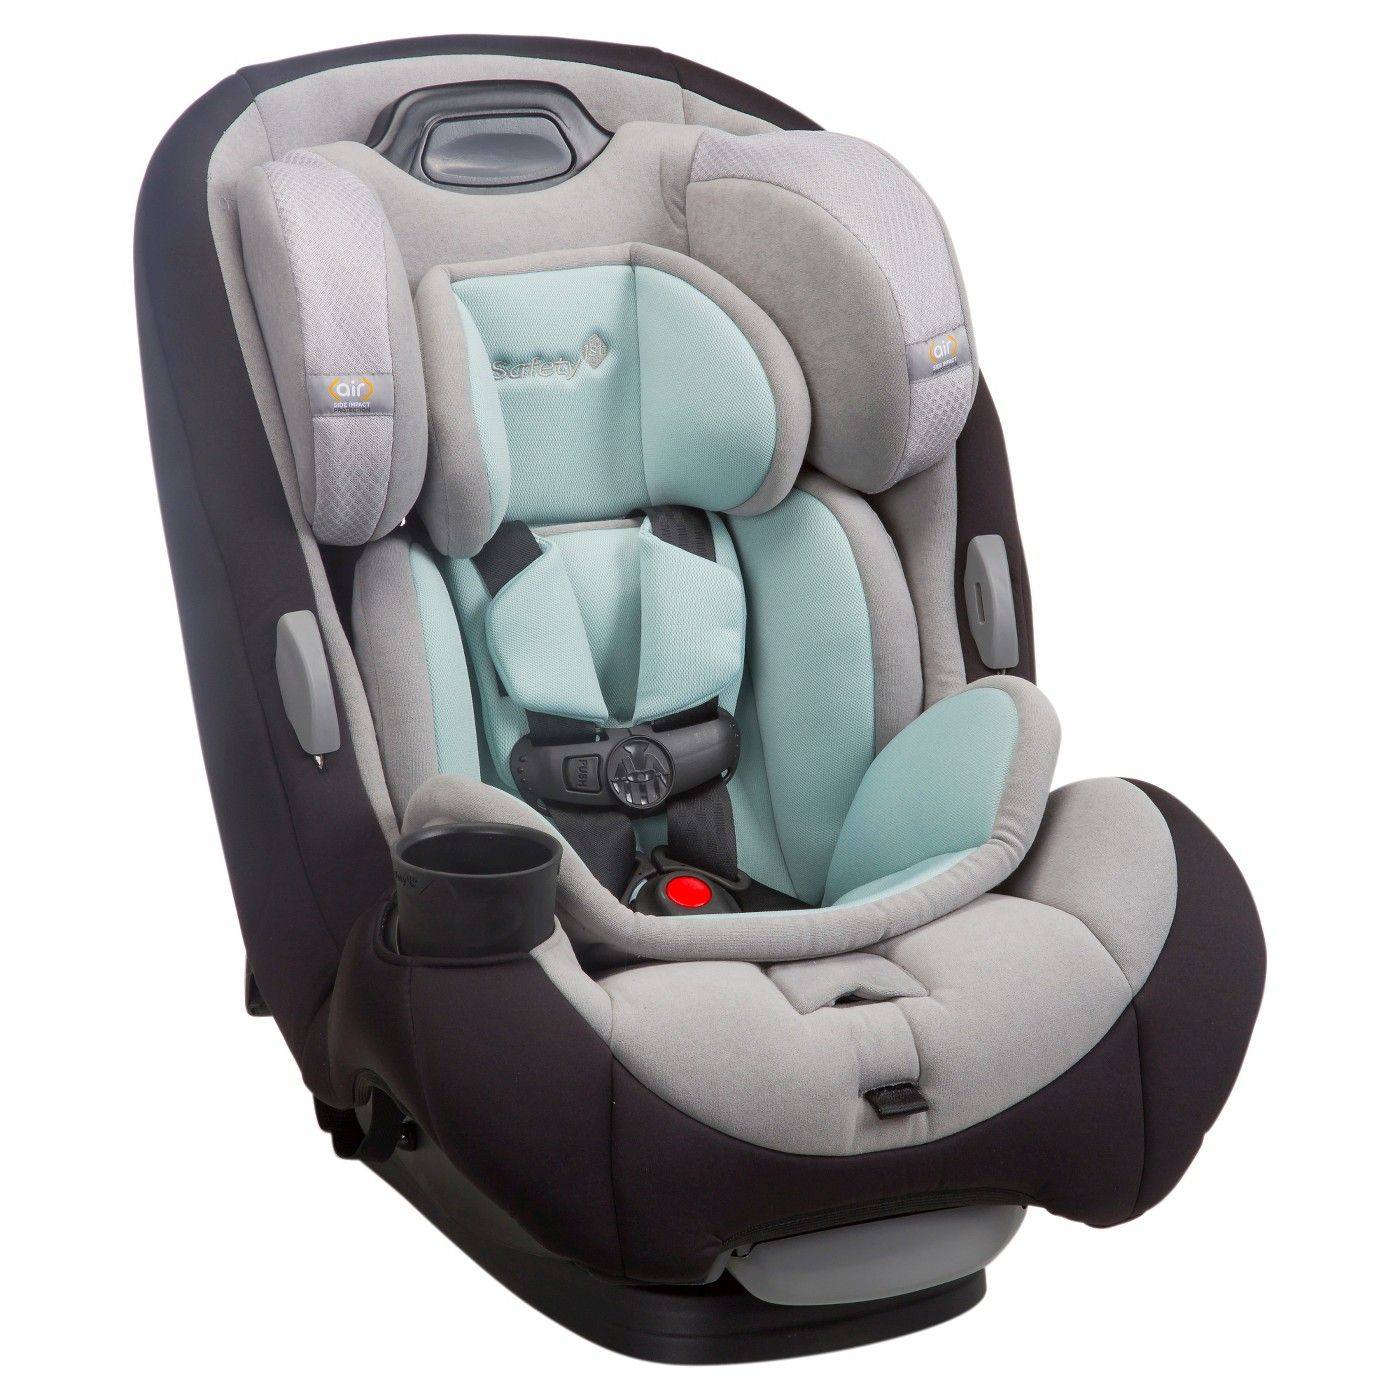 Safety 1st Grow in 2020 Baby car seats, Car seats